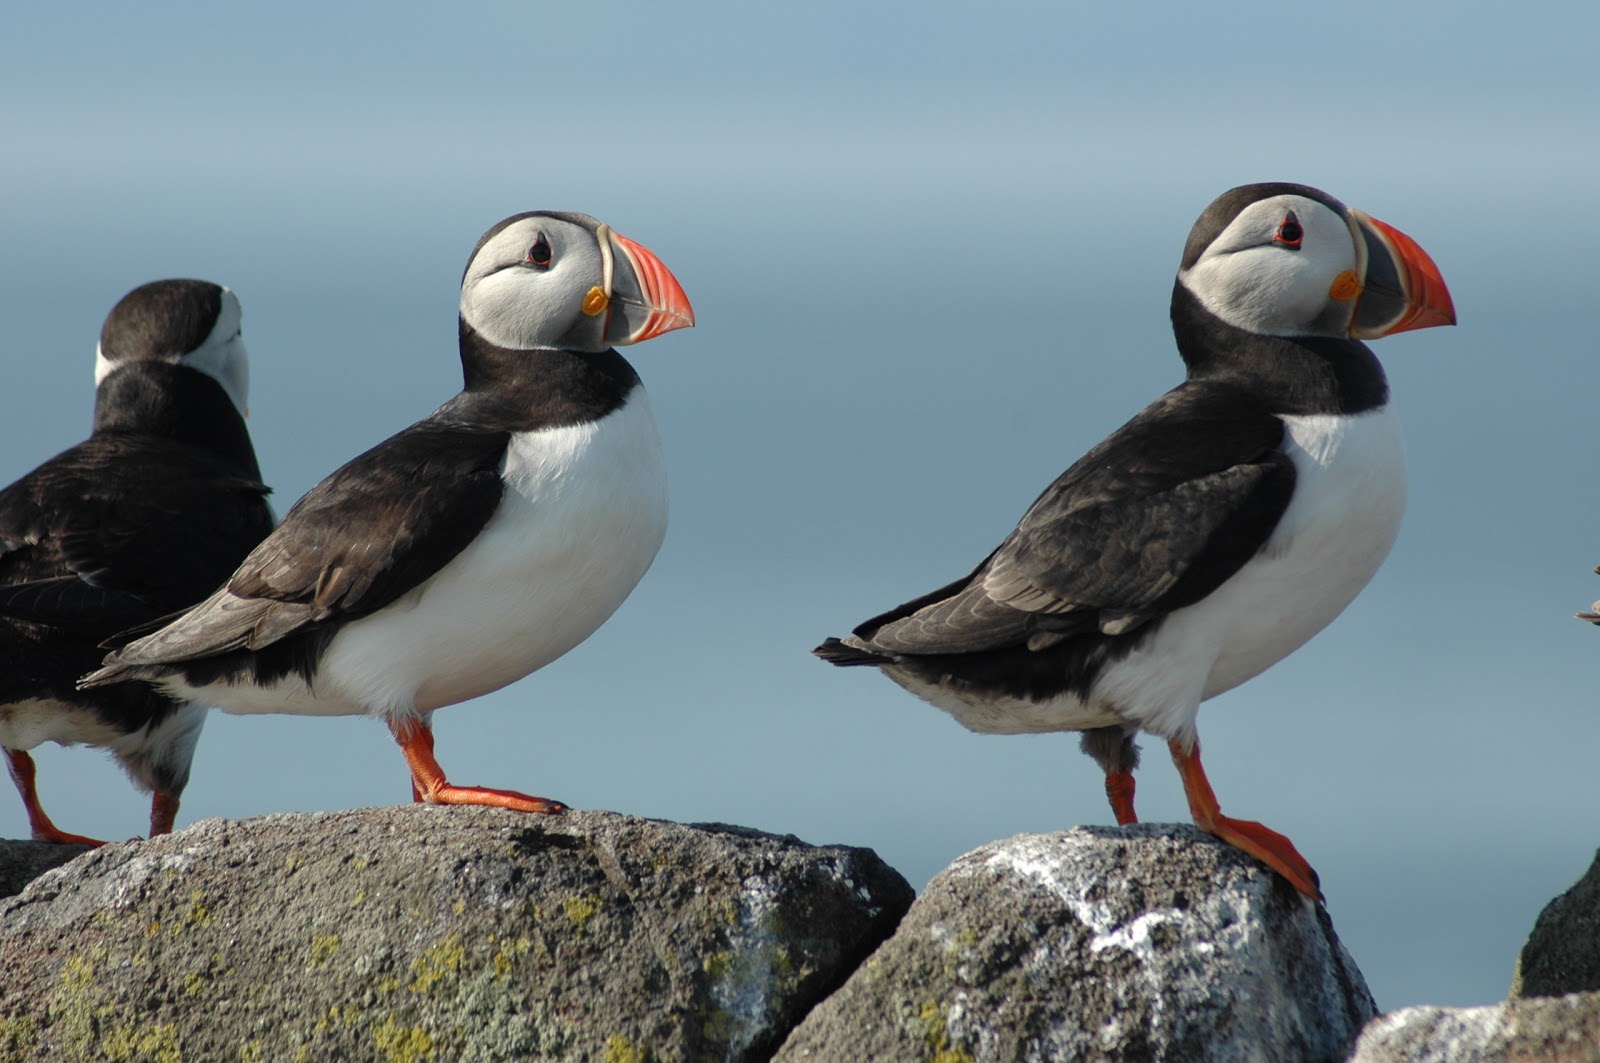 Puffins on the Isle of May (photo: Akinori Takahashi)